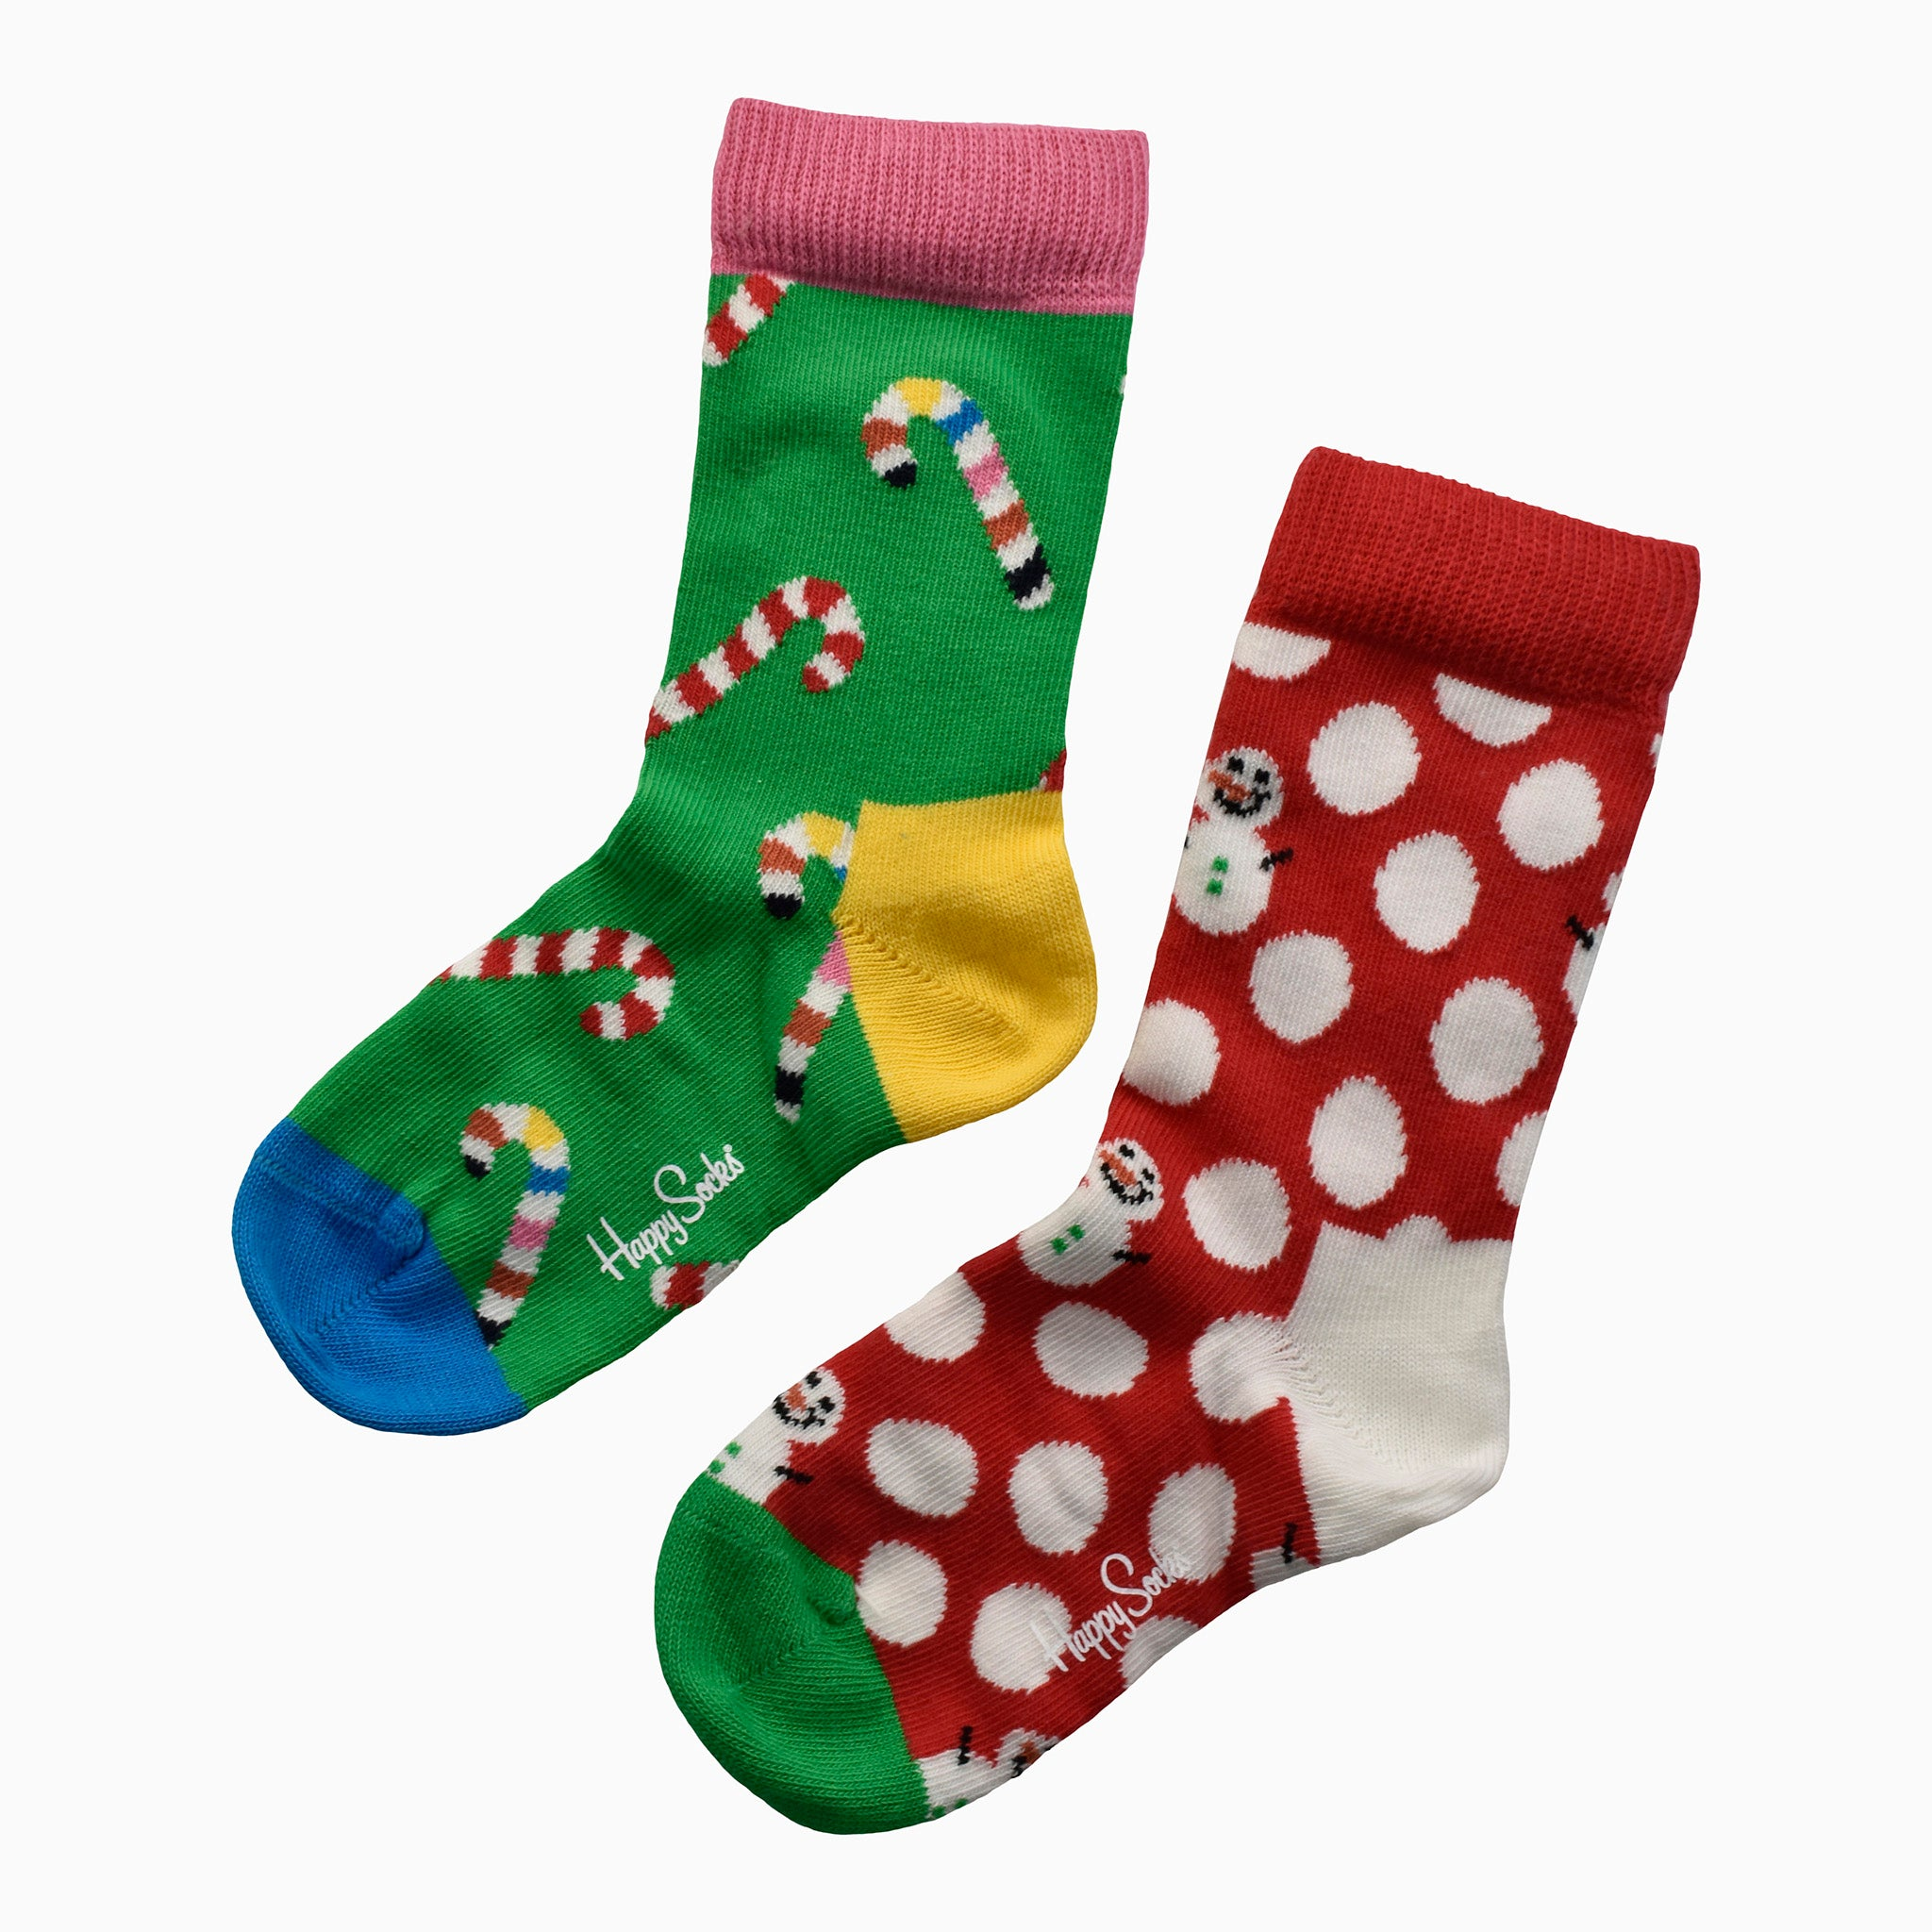 Kids' Holiday Socks Gift Cracker